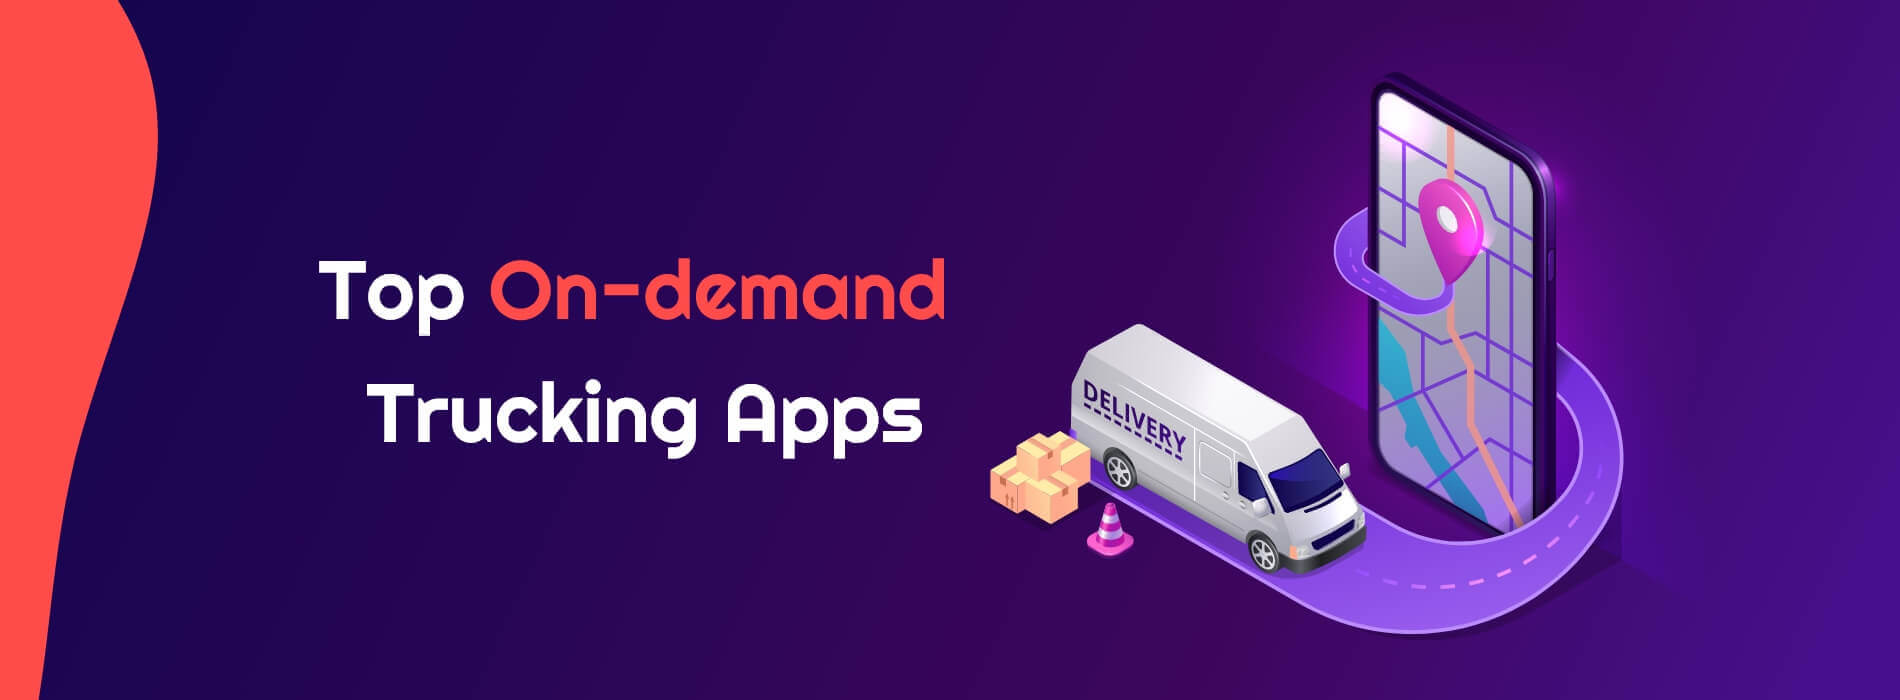 Top On-demand Trucking Apps to Get Inspired From